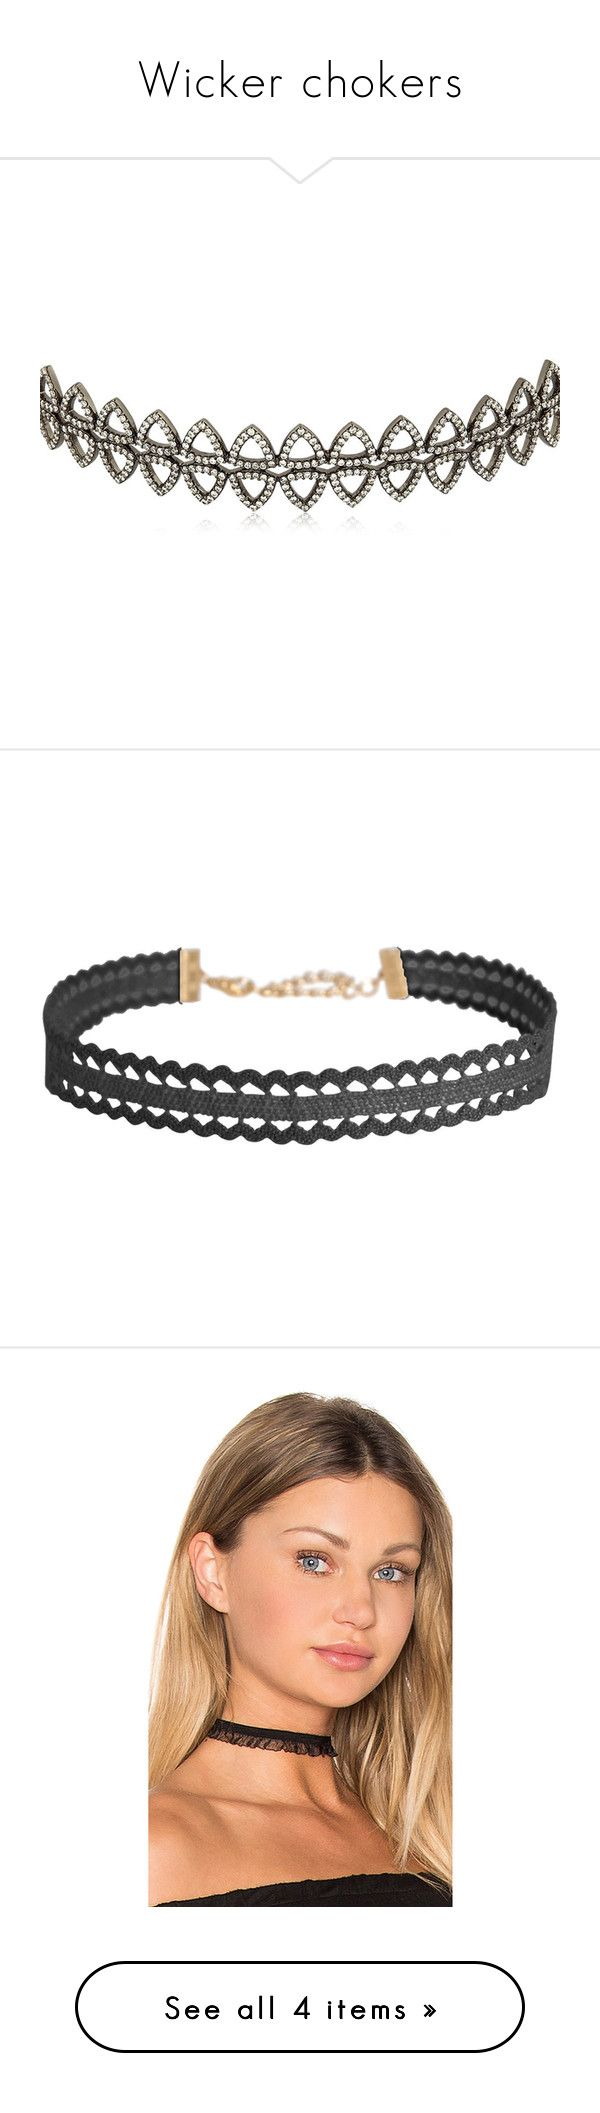 """""""Wicker chokers"""" by alena-mr ❤ liked on Polyvore featuring jewelry, necklaces, accessories, chokers, colares, black, choker jewelry, choker necklace, black crochet and bib collar necklace"""